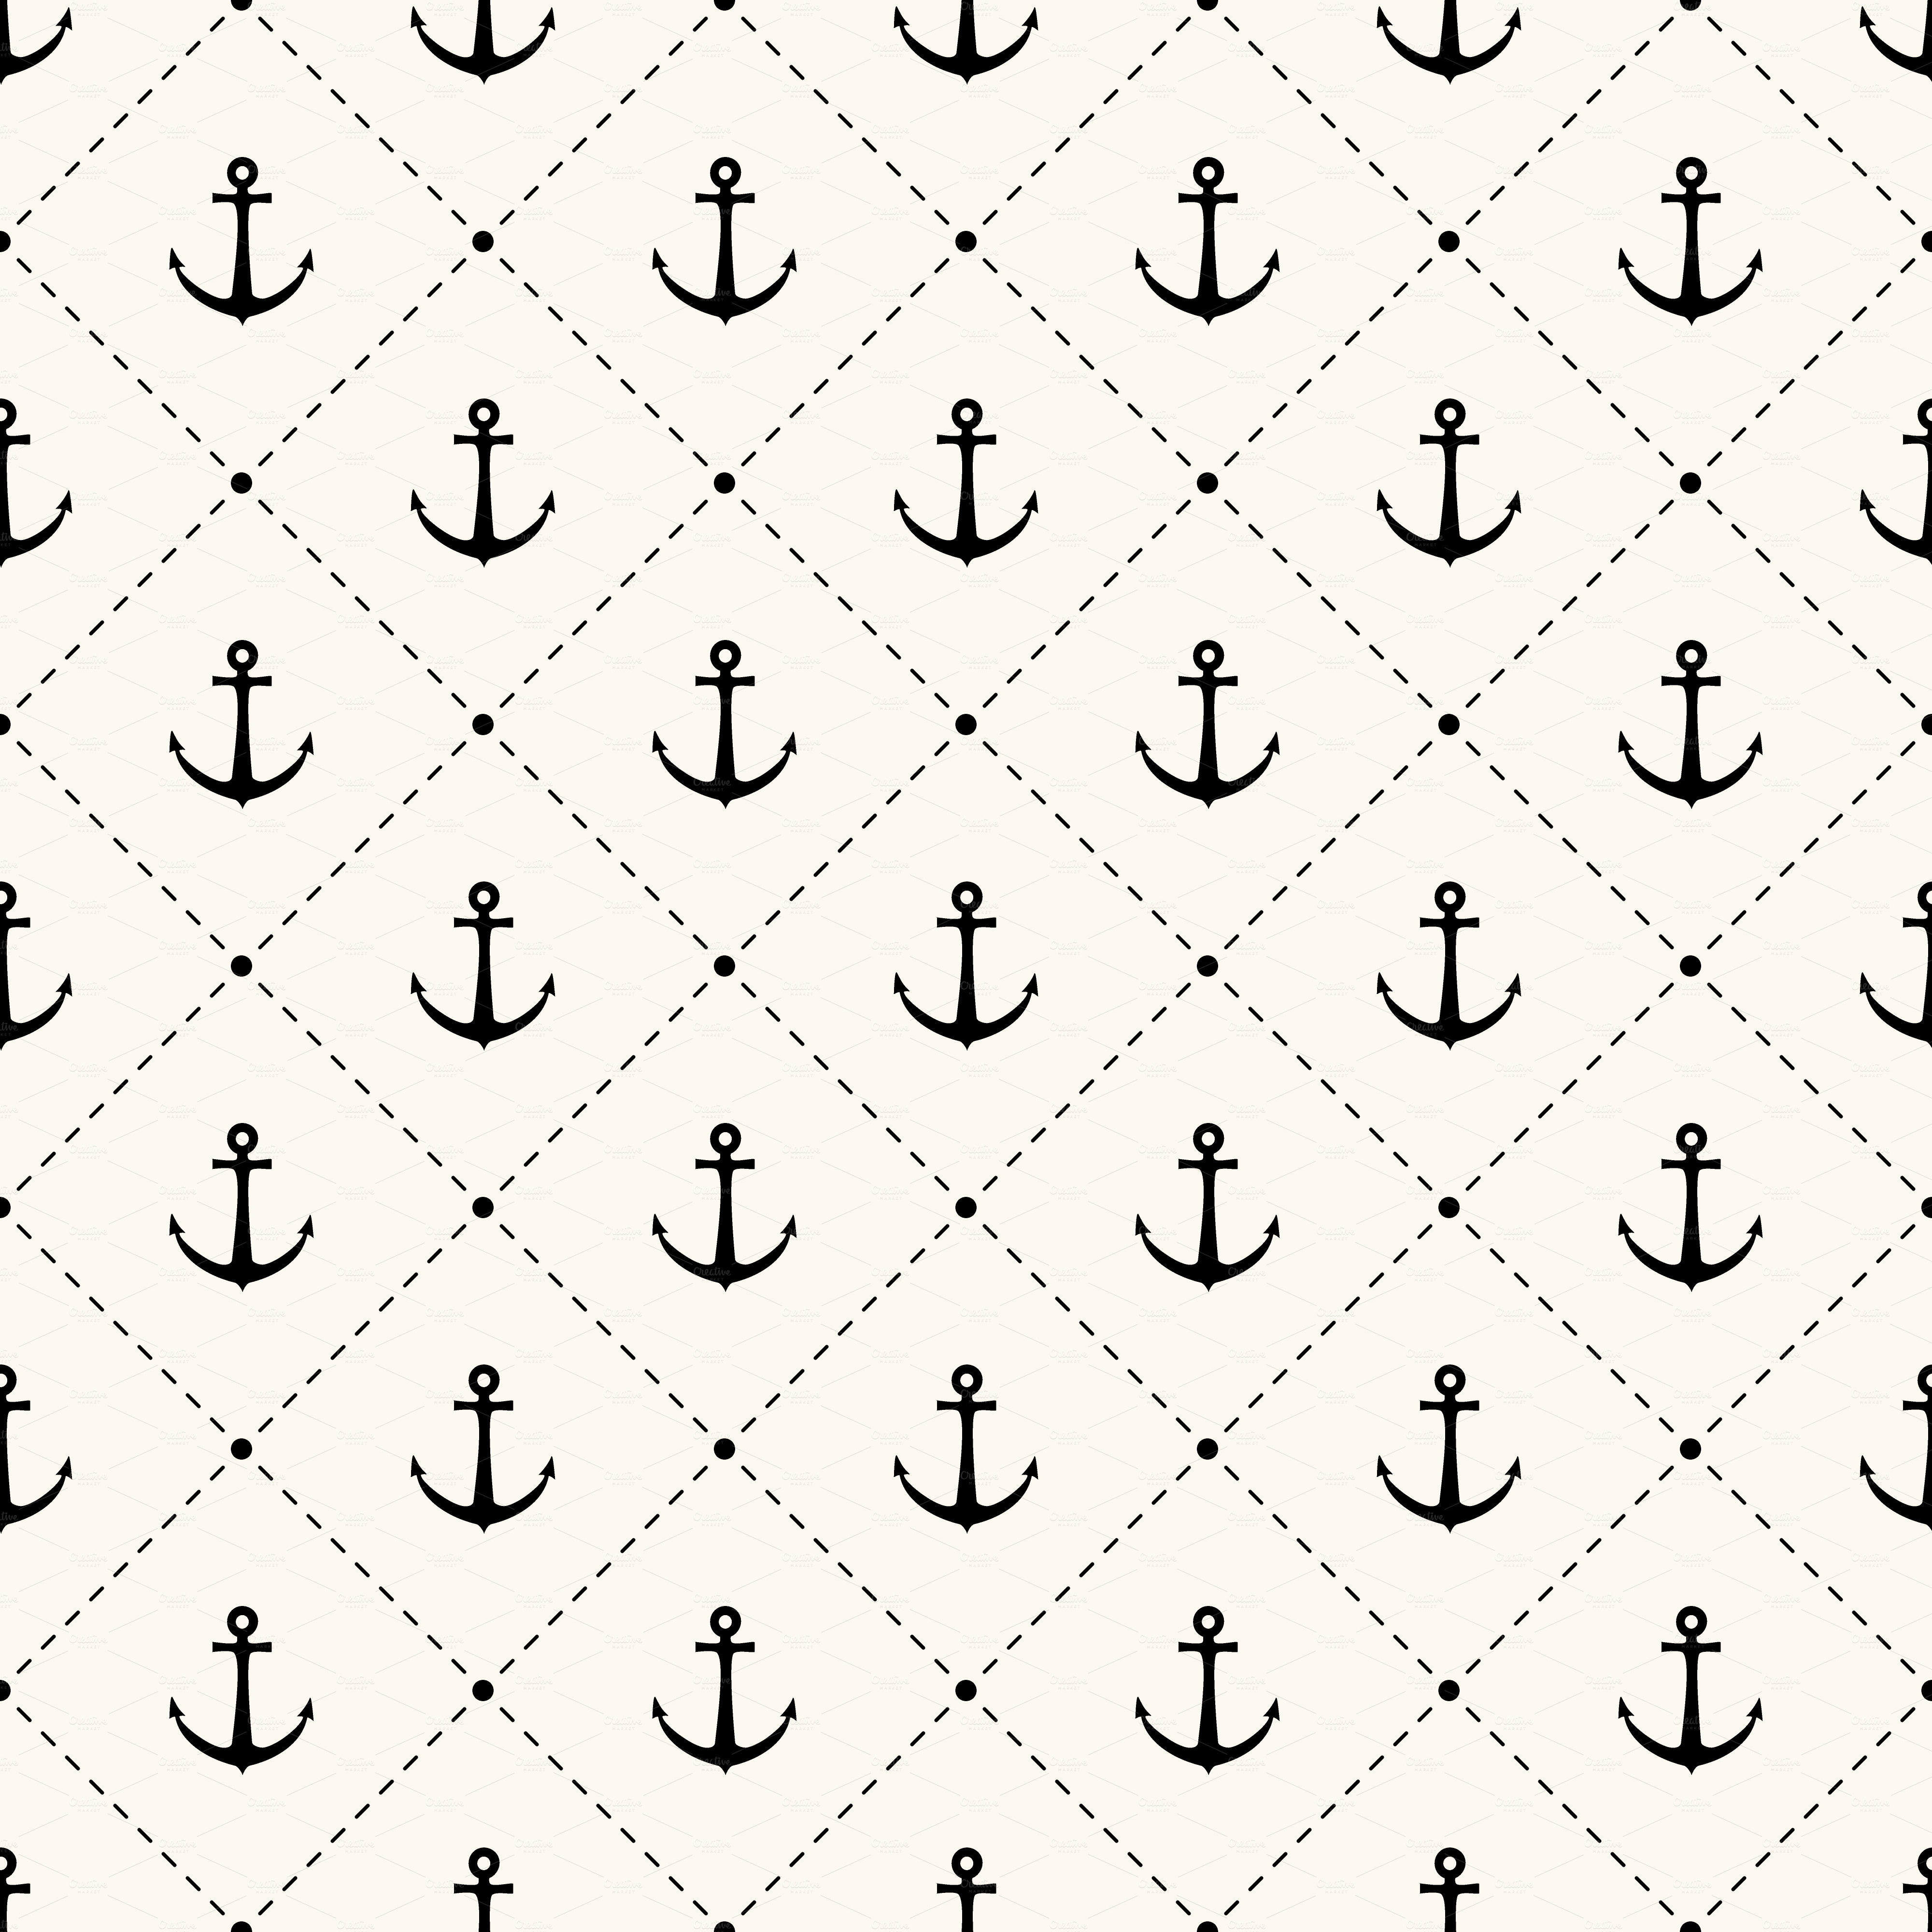 Cute Anchor Backgrounds Anchor4 ojpg1384751953 4000x4000